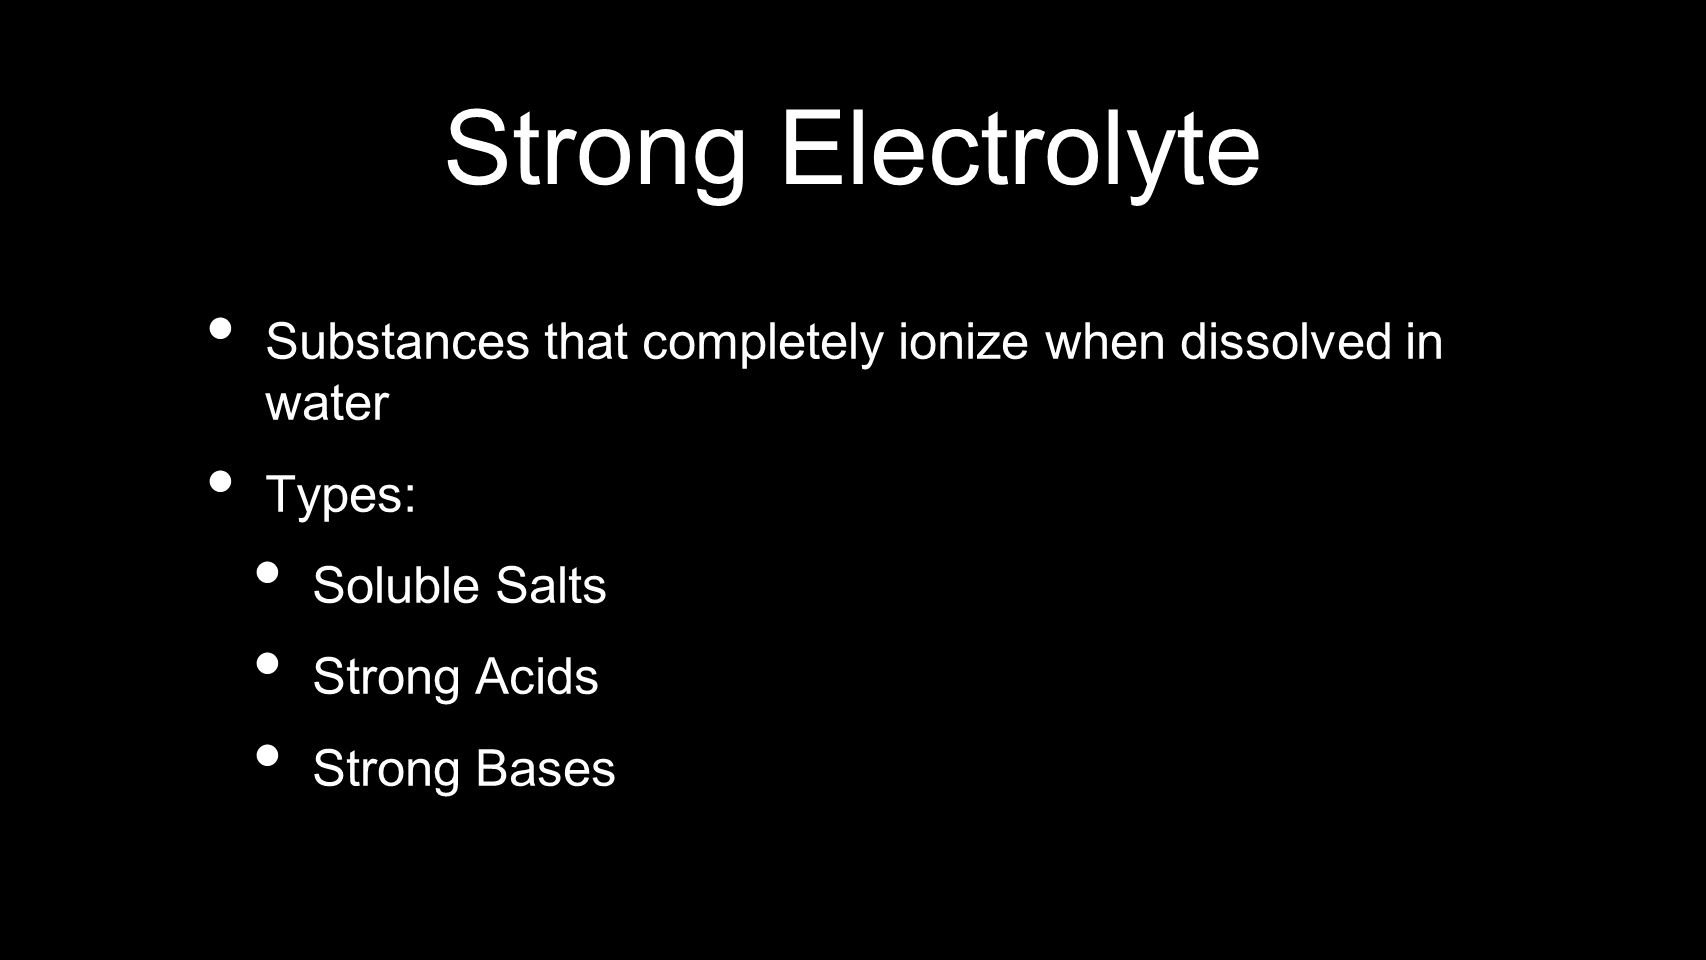 Strong Electrolyte Substances that completely ionize when dissolved in water Types: Soluble Salts Strong Acids Strong Bases